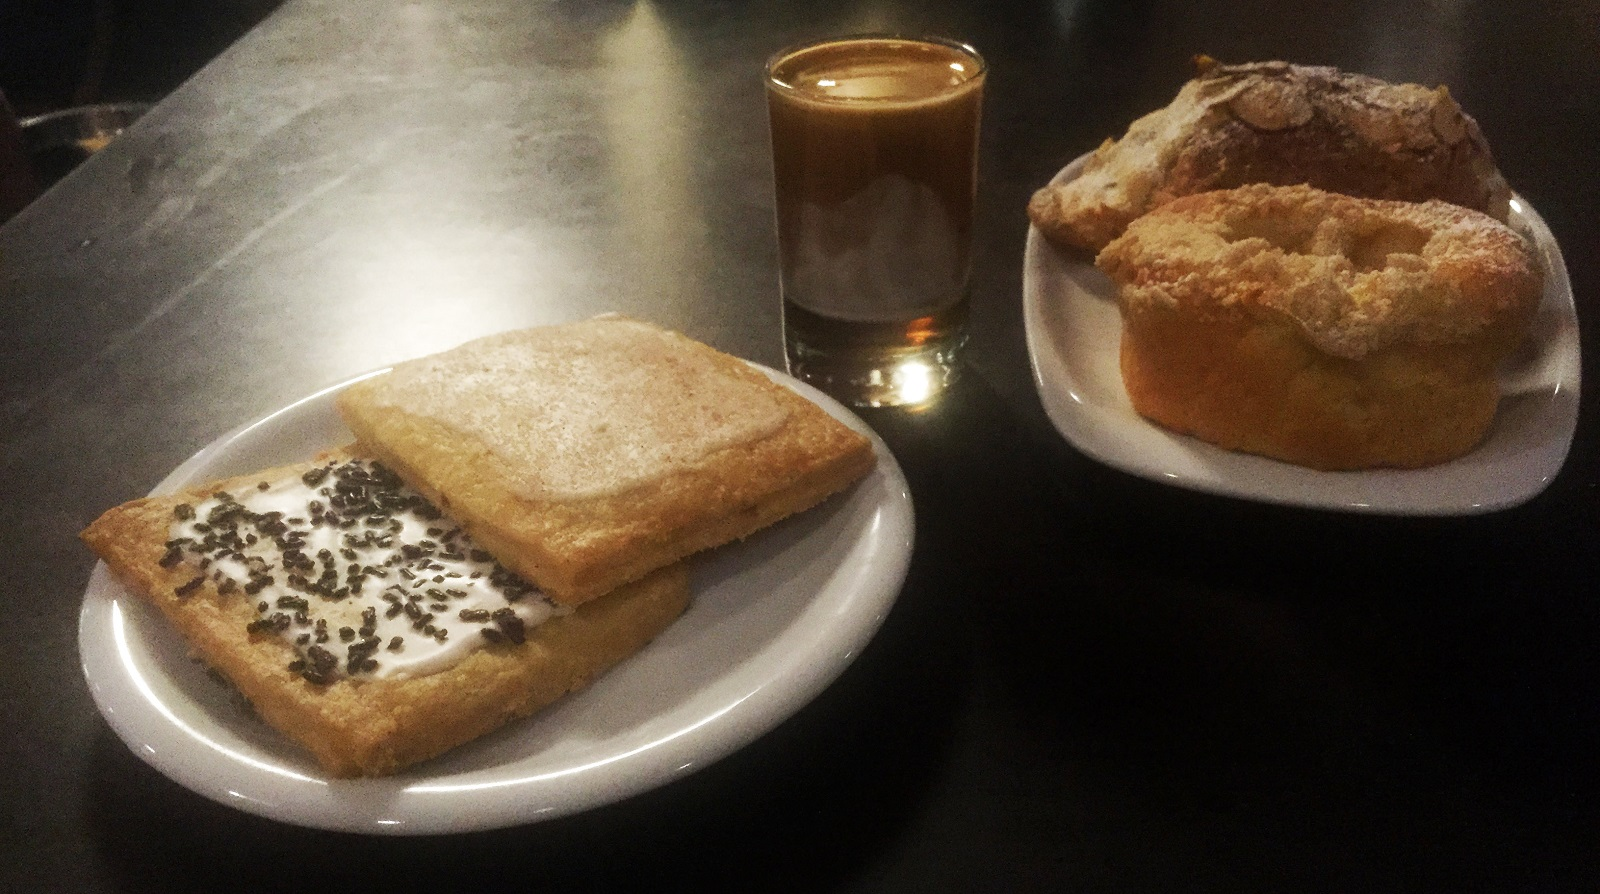 Butter Block pastries -- including their near-addictive pop tarts -- pair nicely with drinks at Public Espresso. (Lizz Schumer/Special to The News)